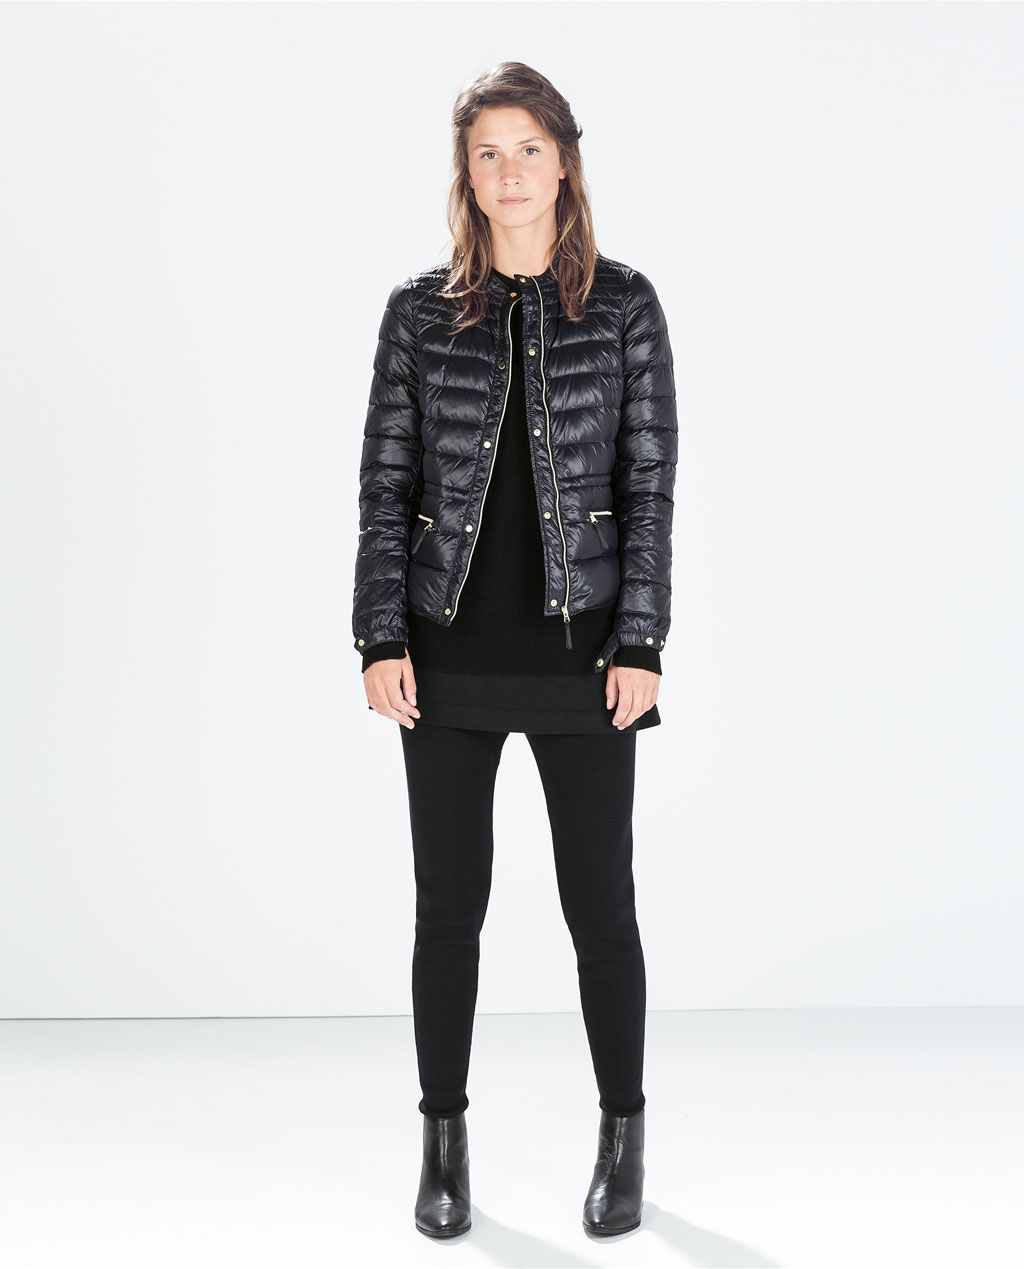 ZARA - WOMAN - ULTRALIGHT SHORT DOWN JACKET --- LOOVE! | Fashion ...